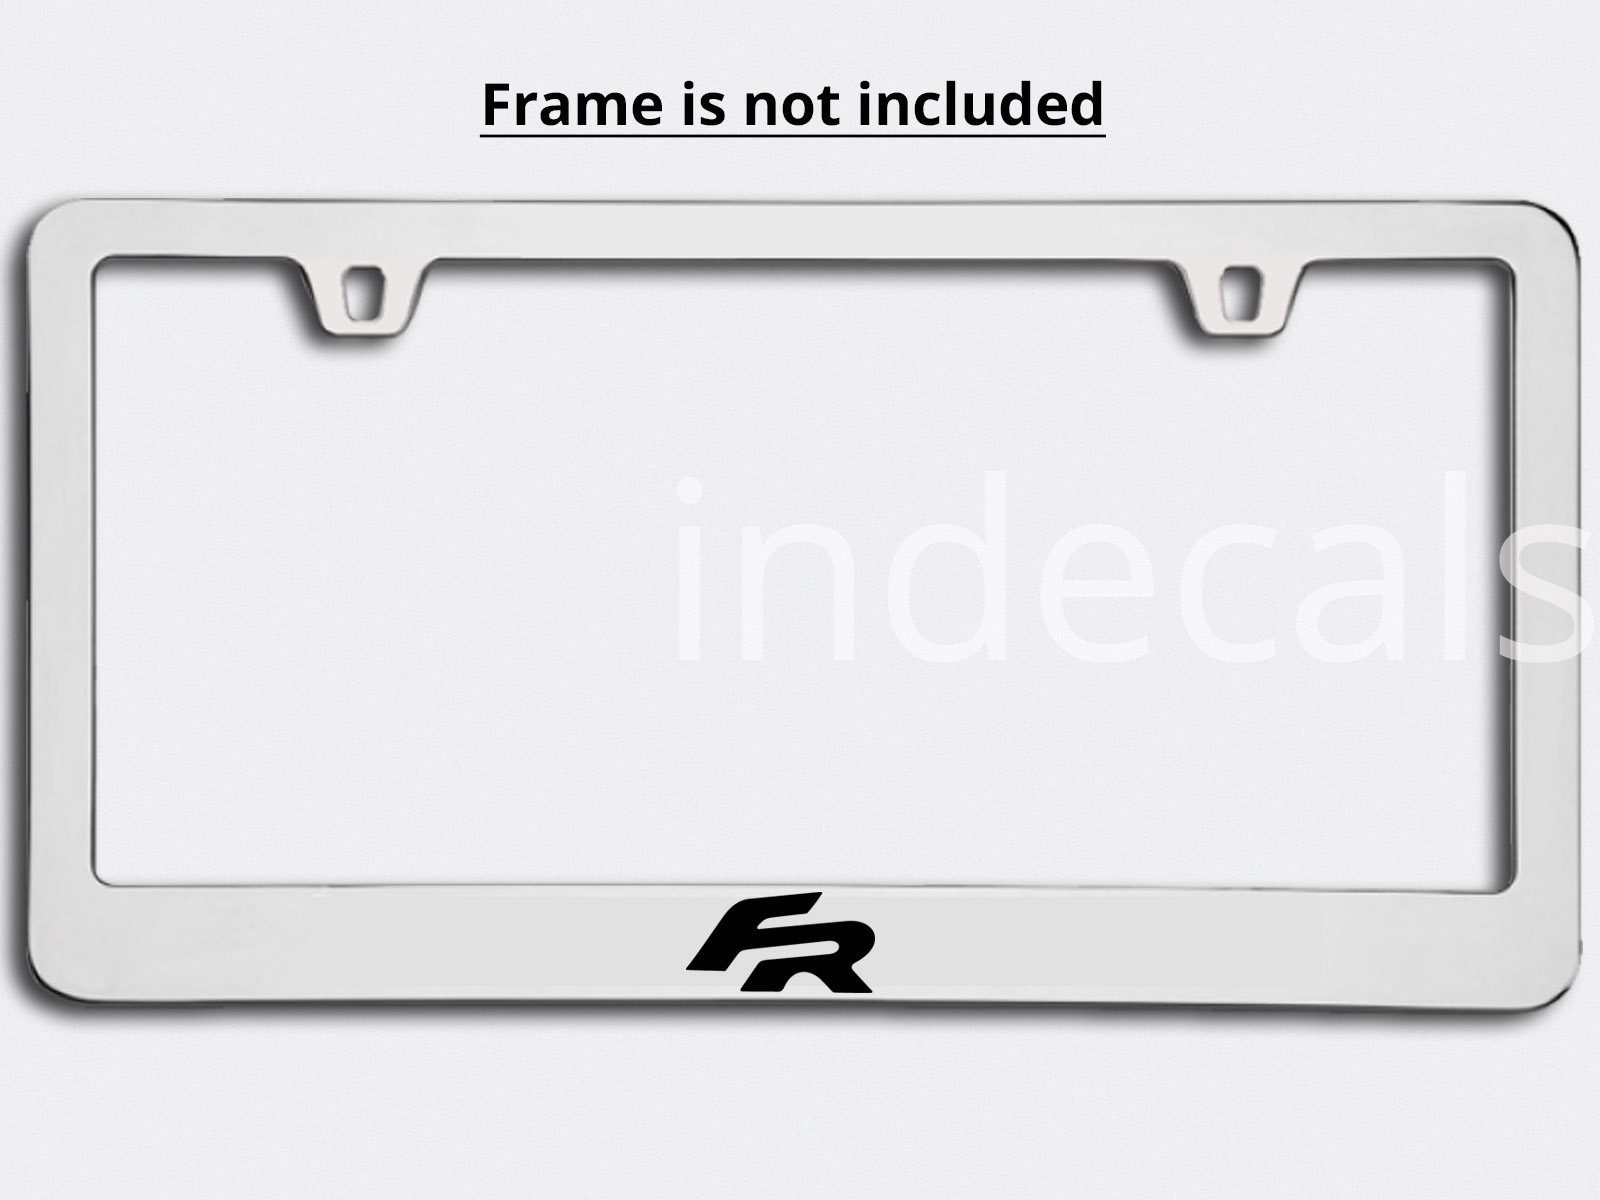 3 x Seat FR Stickers for License Plate Frame - Black